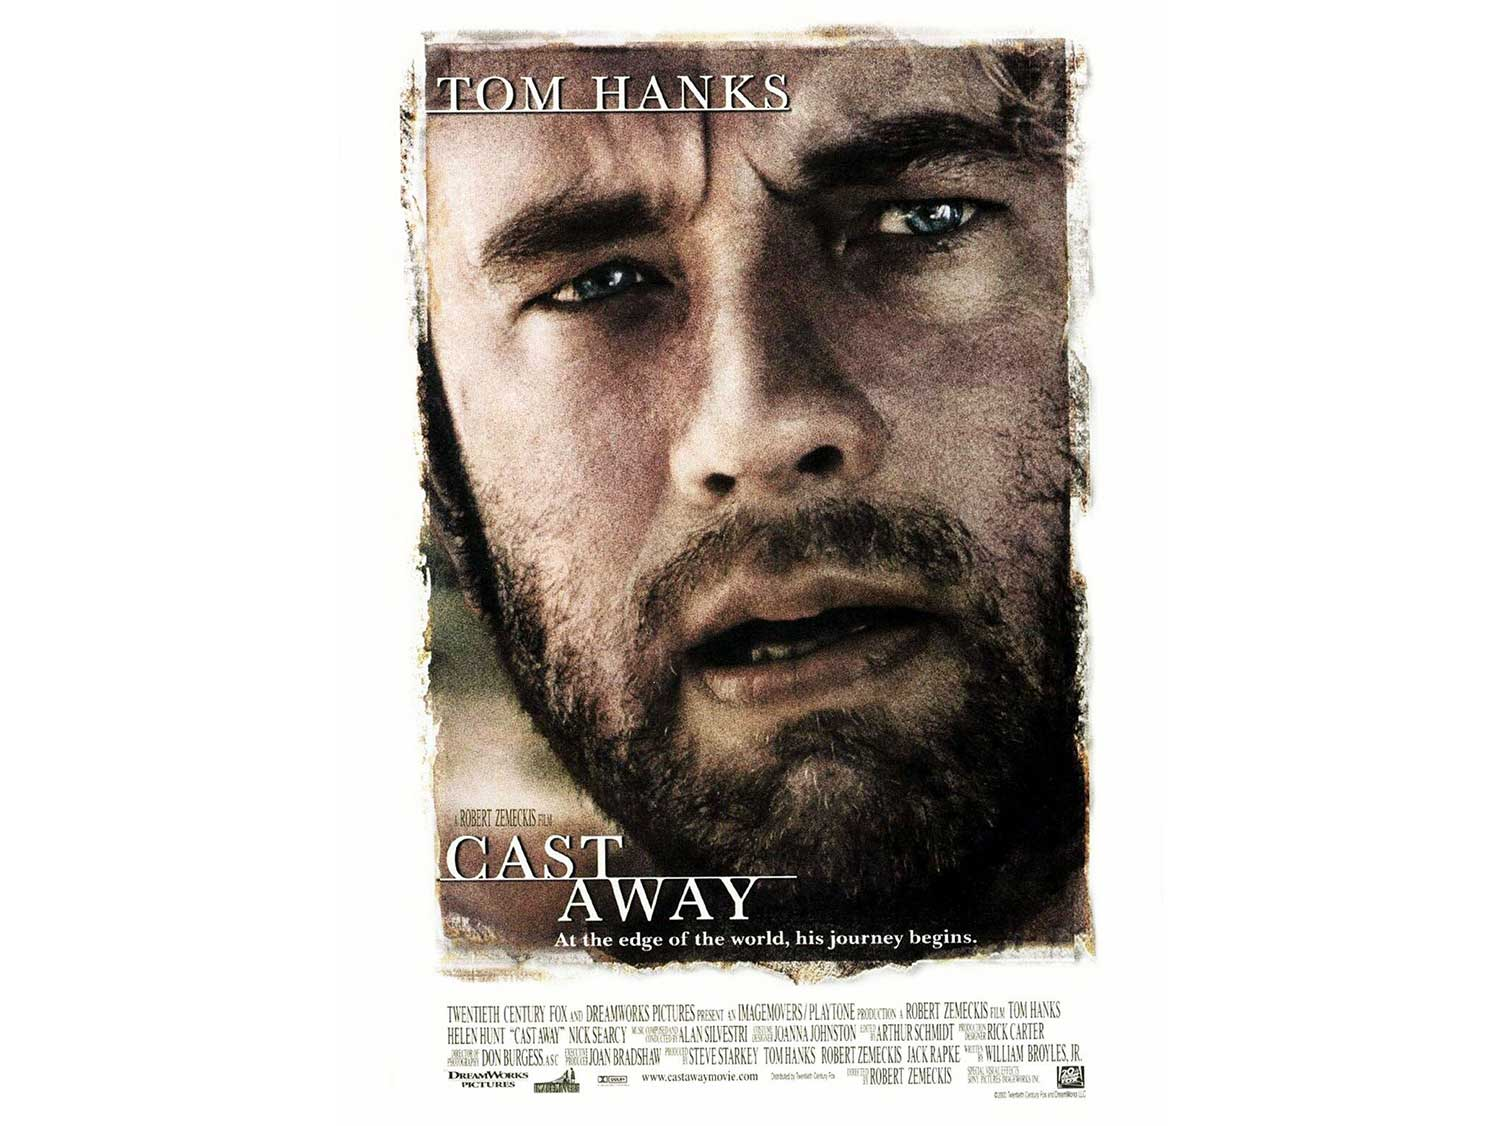 the movie cover of castaway